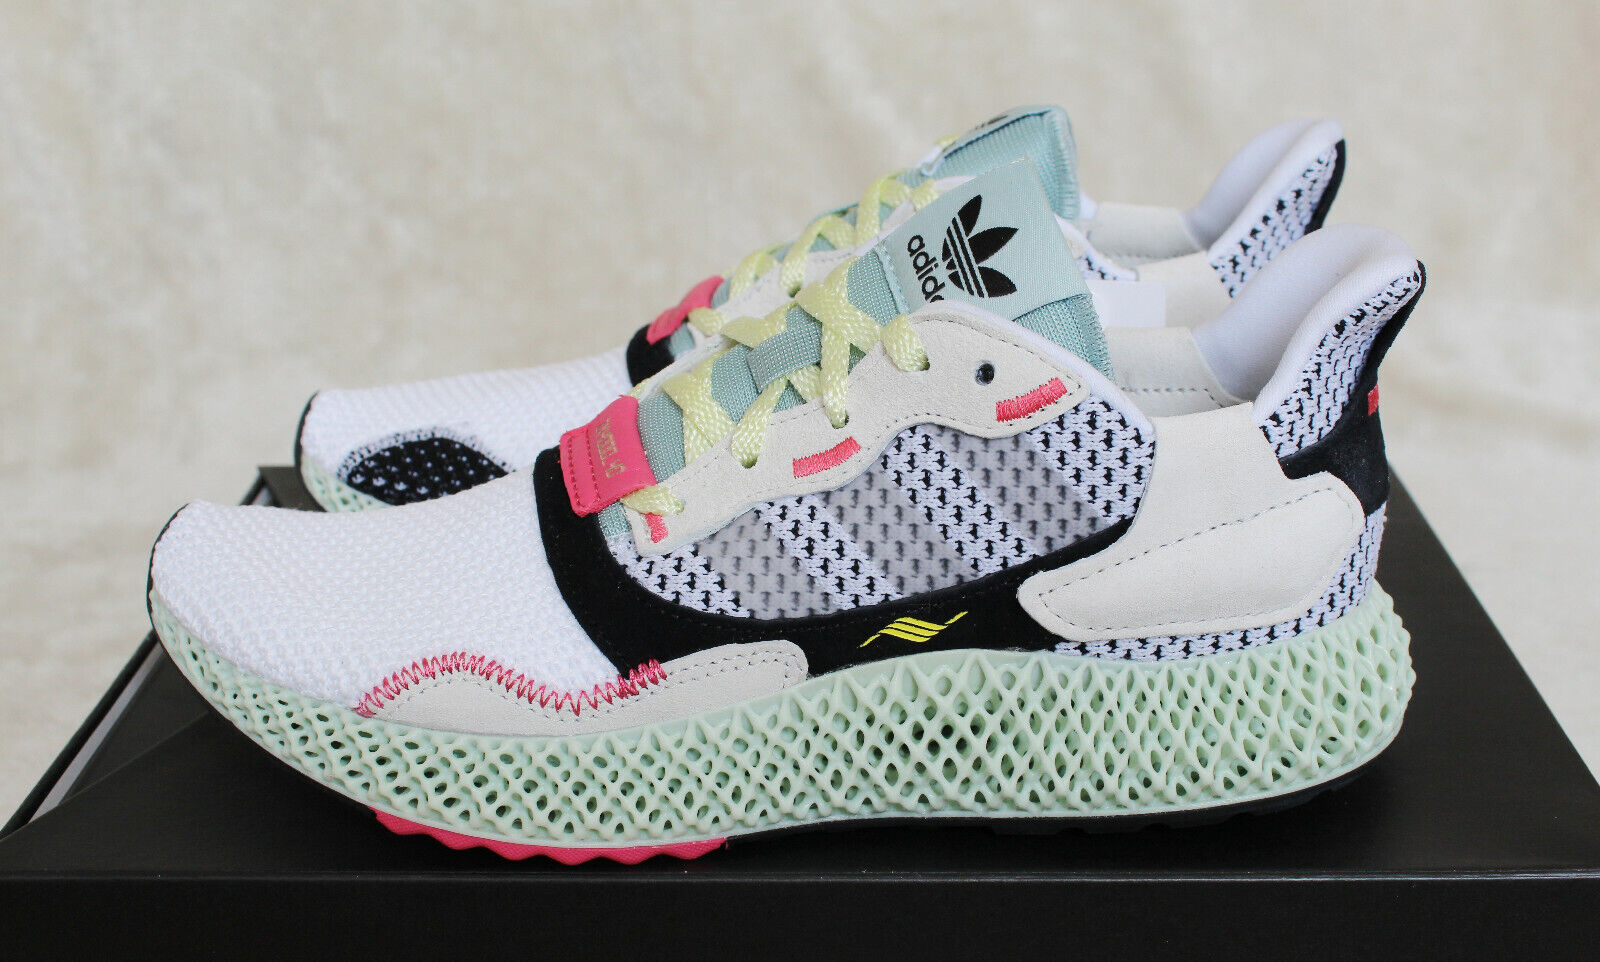 New Adidas ZX4000 4D Futurecraft Printed Sole White Green UK 7 US 7.5 EUR 40 2 3